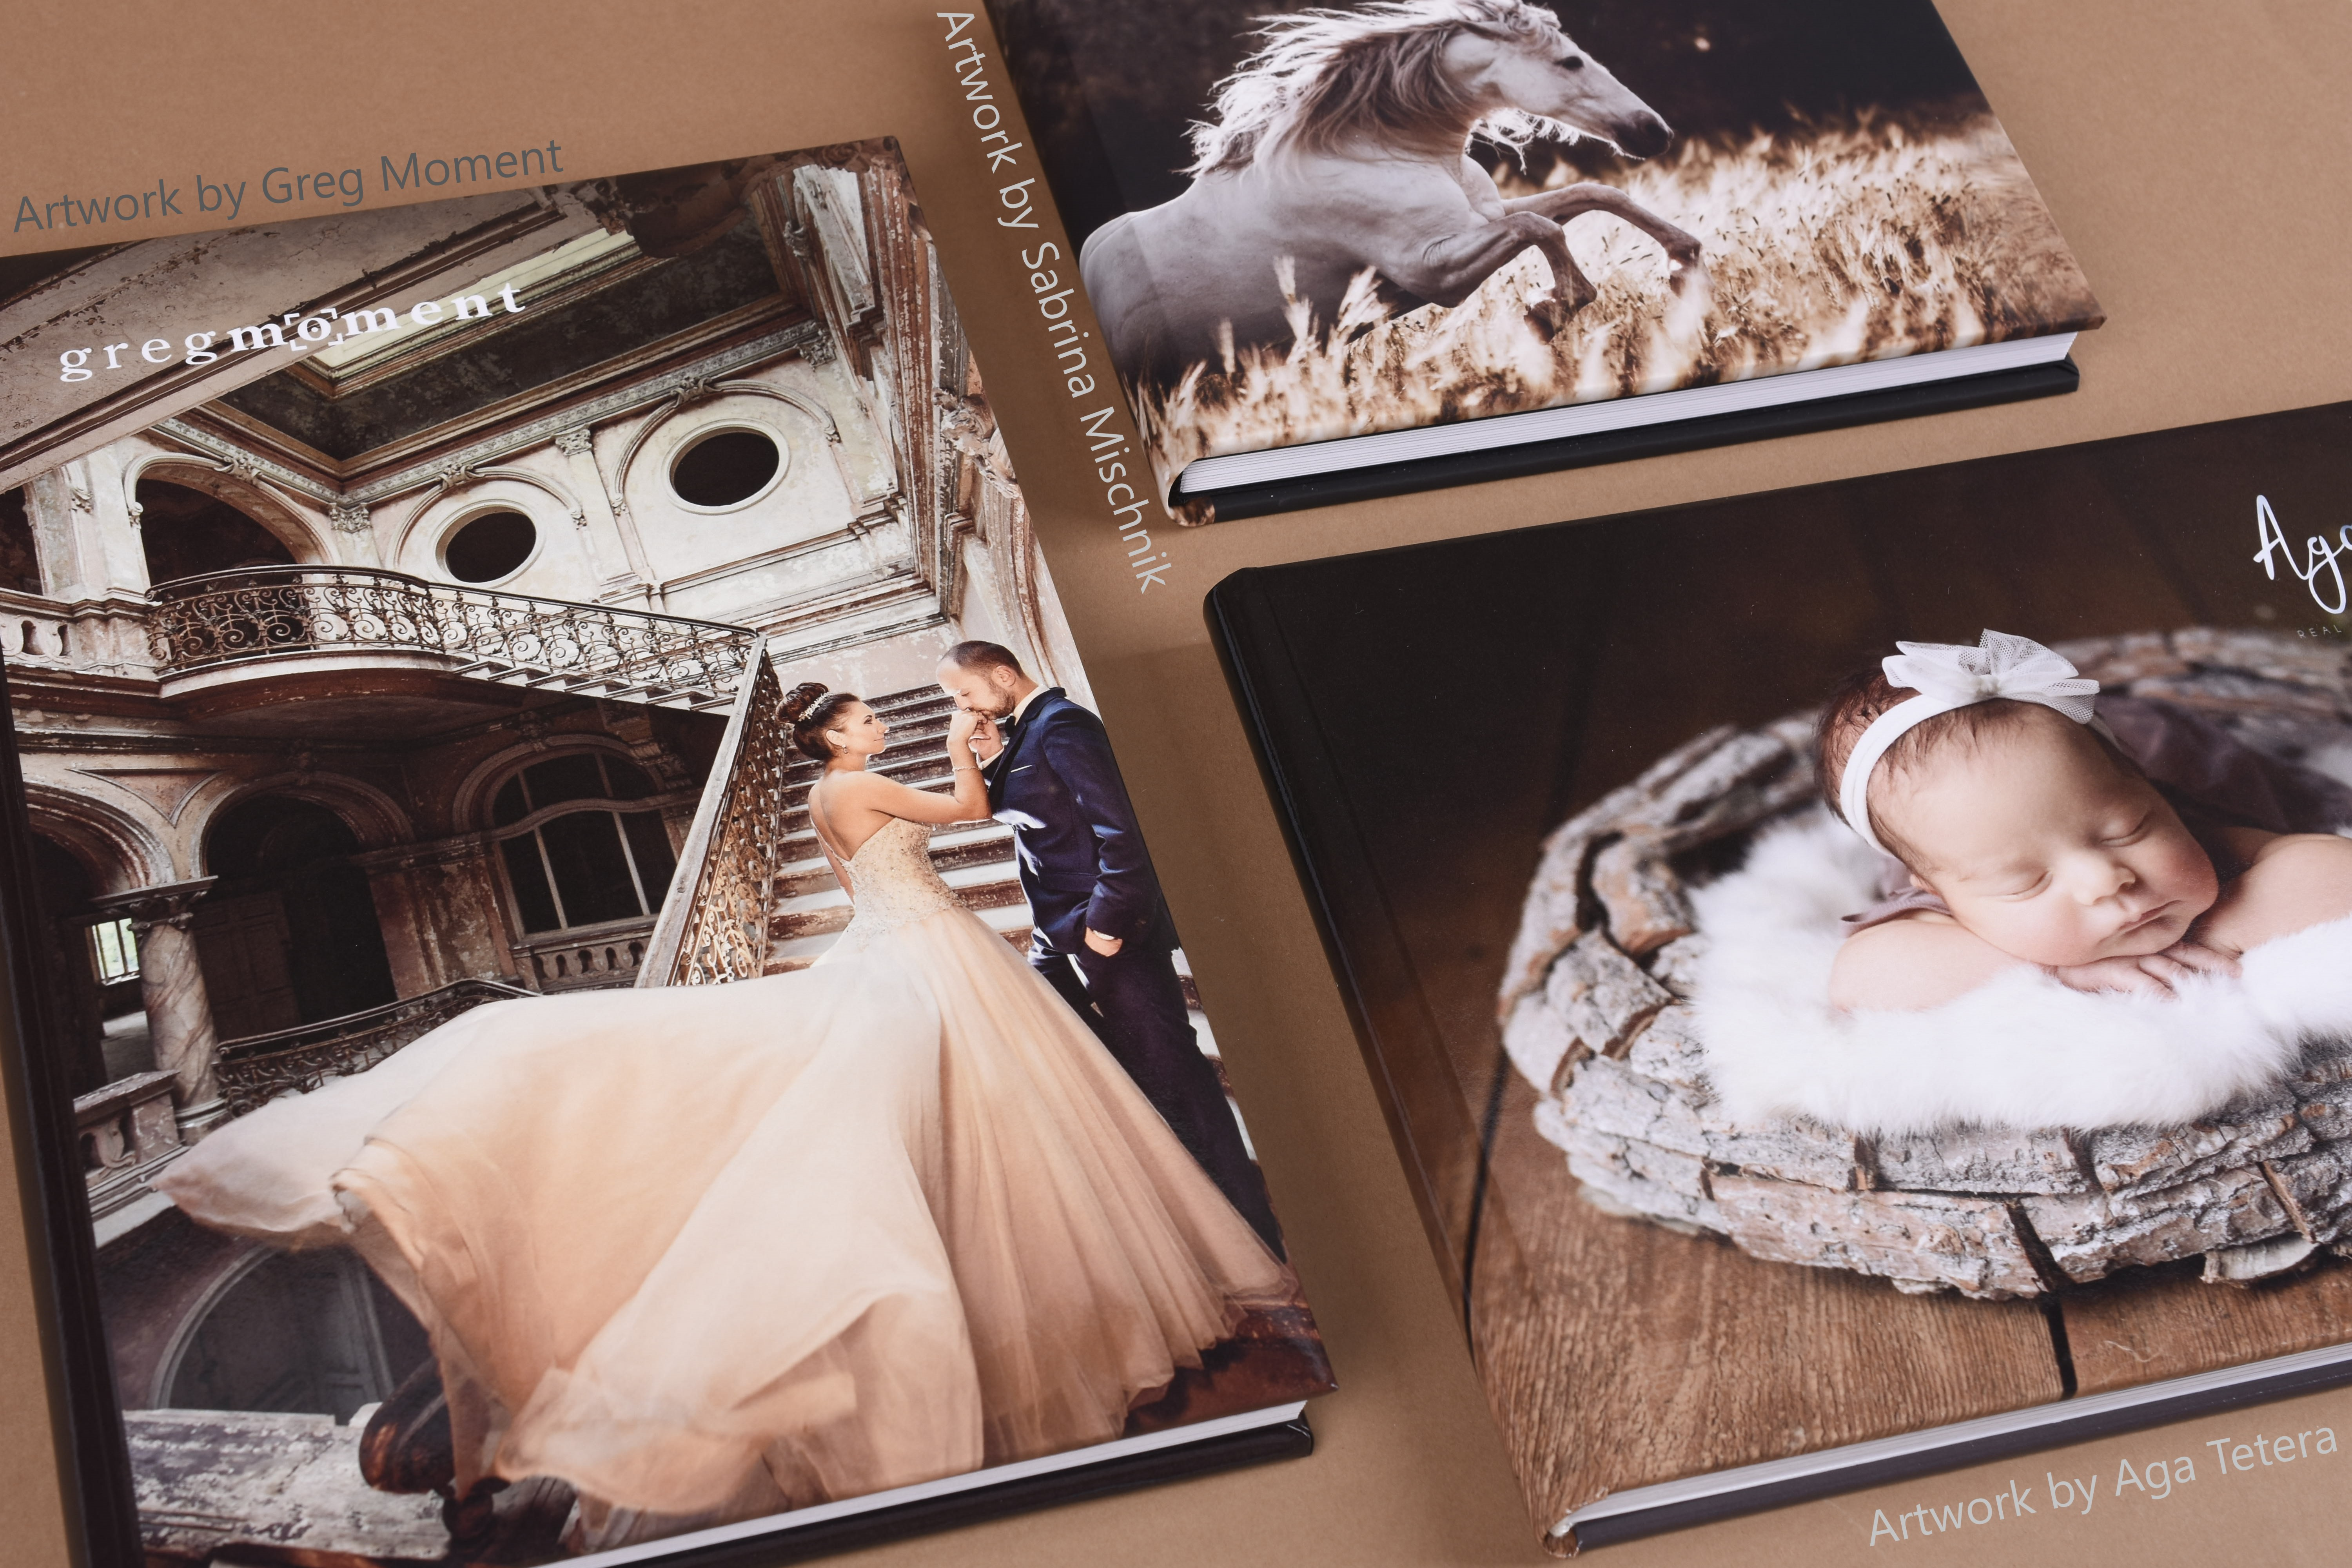 Artwork by Greg Moment, Sabrina Mischnik, and Aga Tetera; our Creative Photo Albums are ideal for that personalized product.